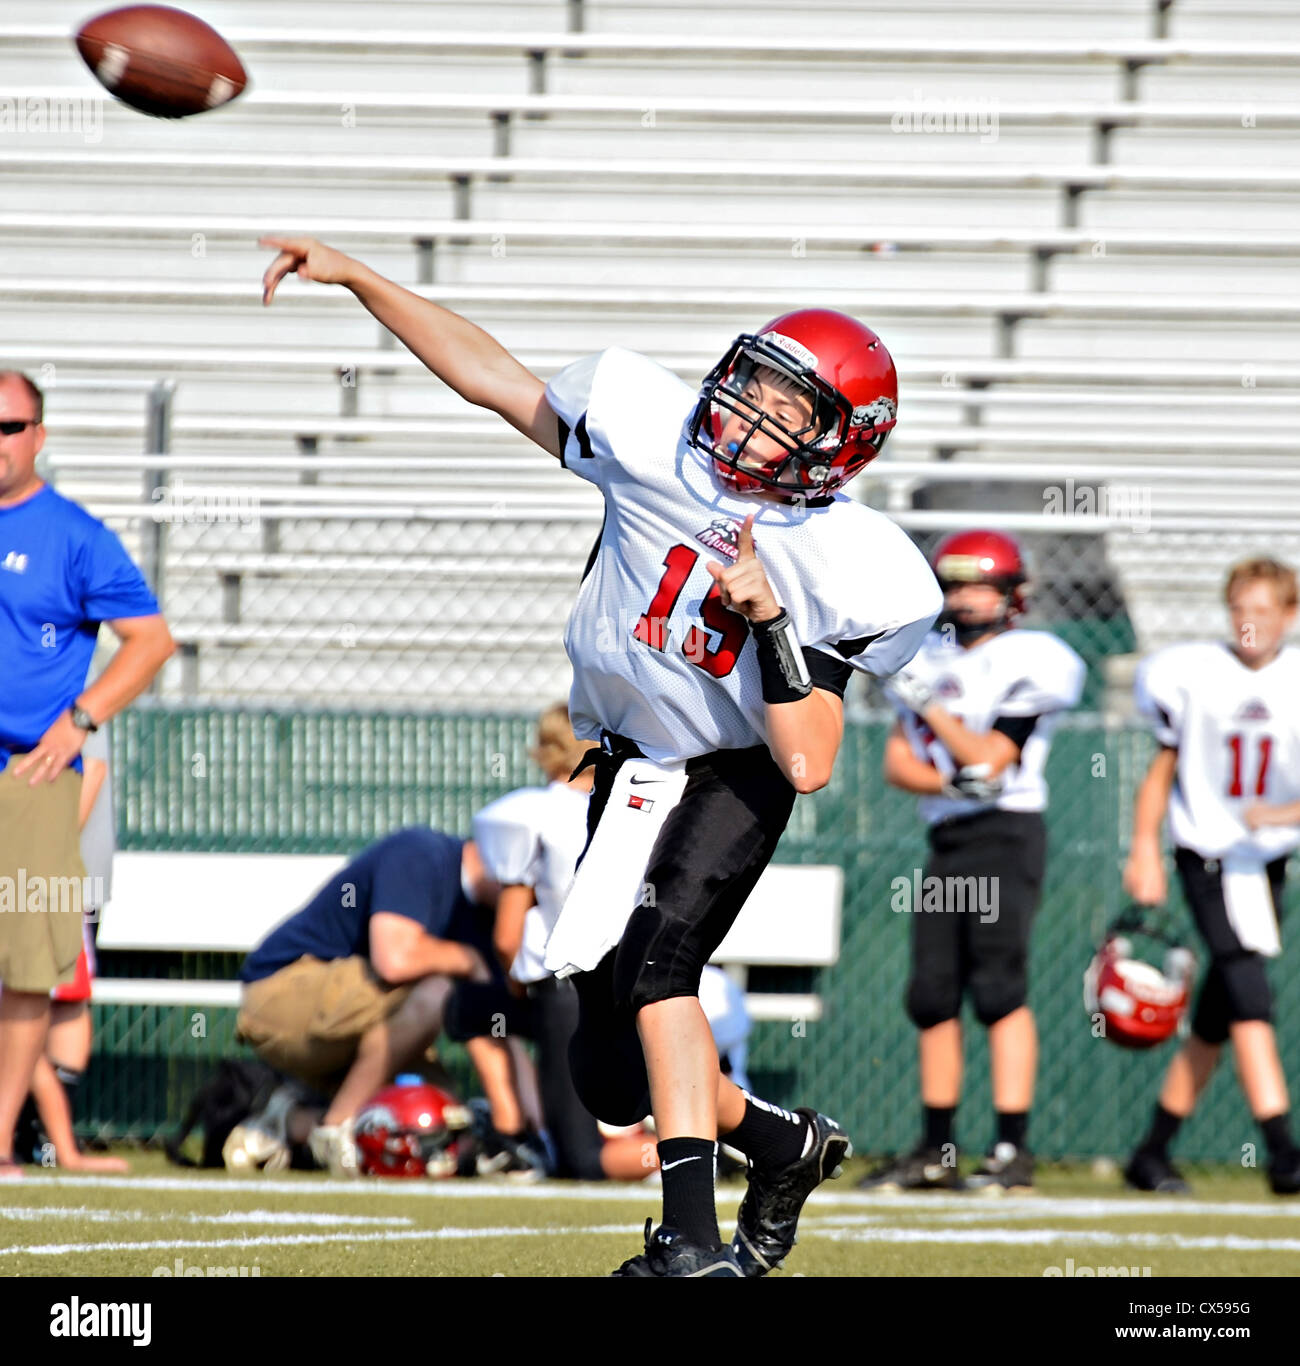 Youth football player throwing a pass. - Stock Image